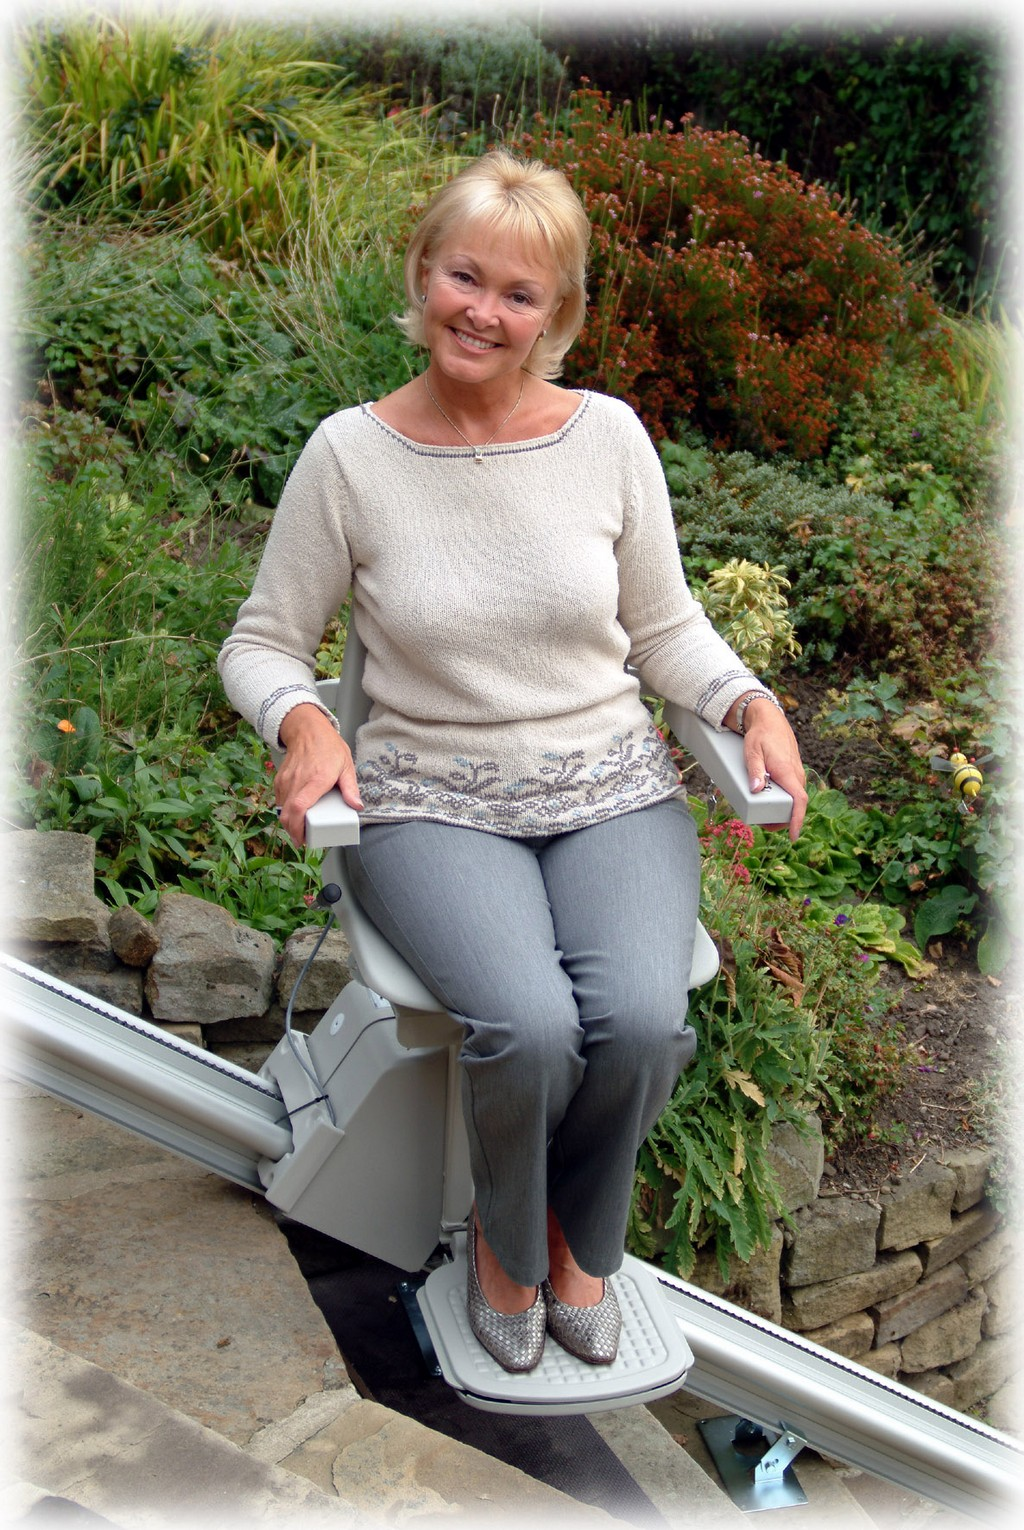 concord stairlift repair instructions, bruno stair lift, meditek stair lifts, medicare assisted stairlifts